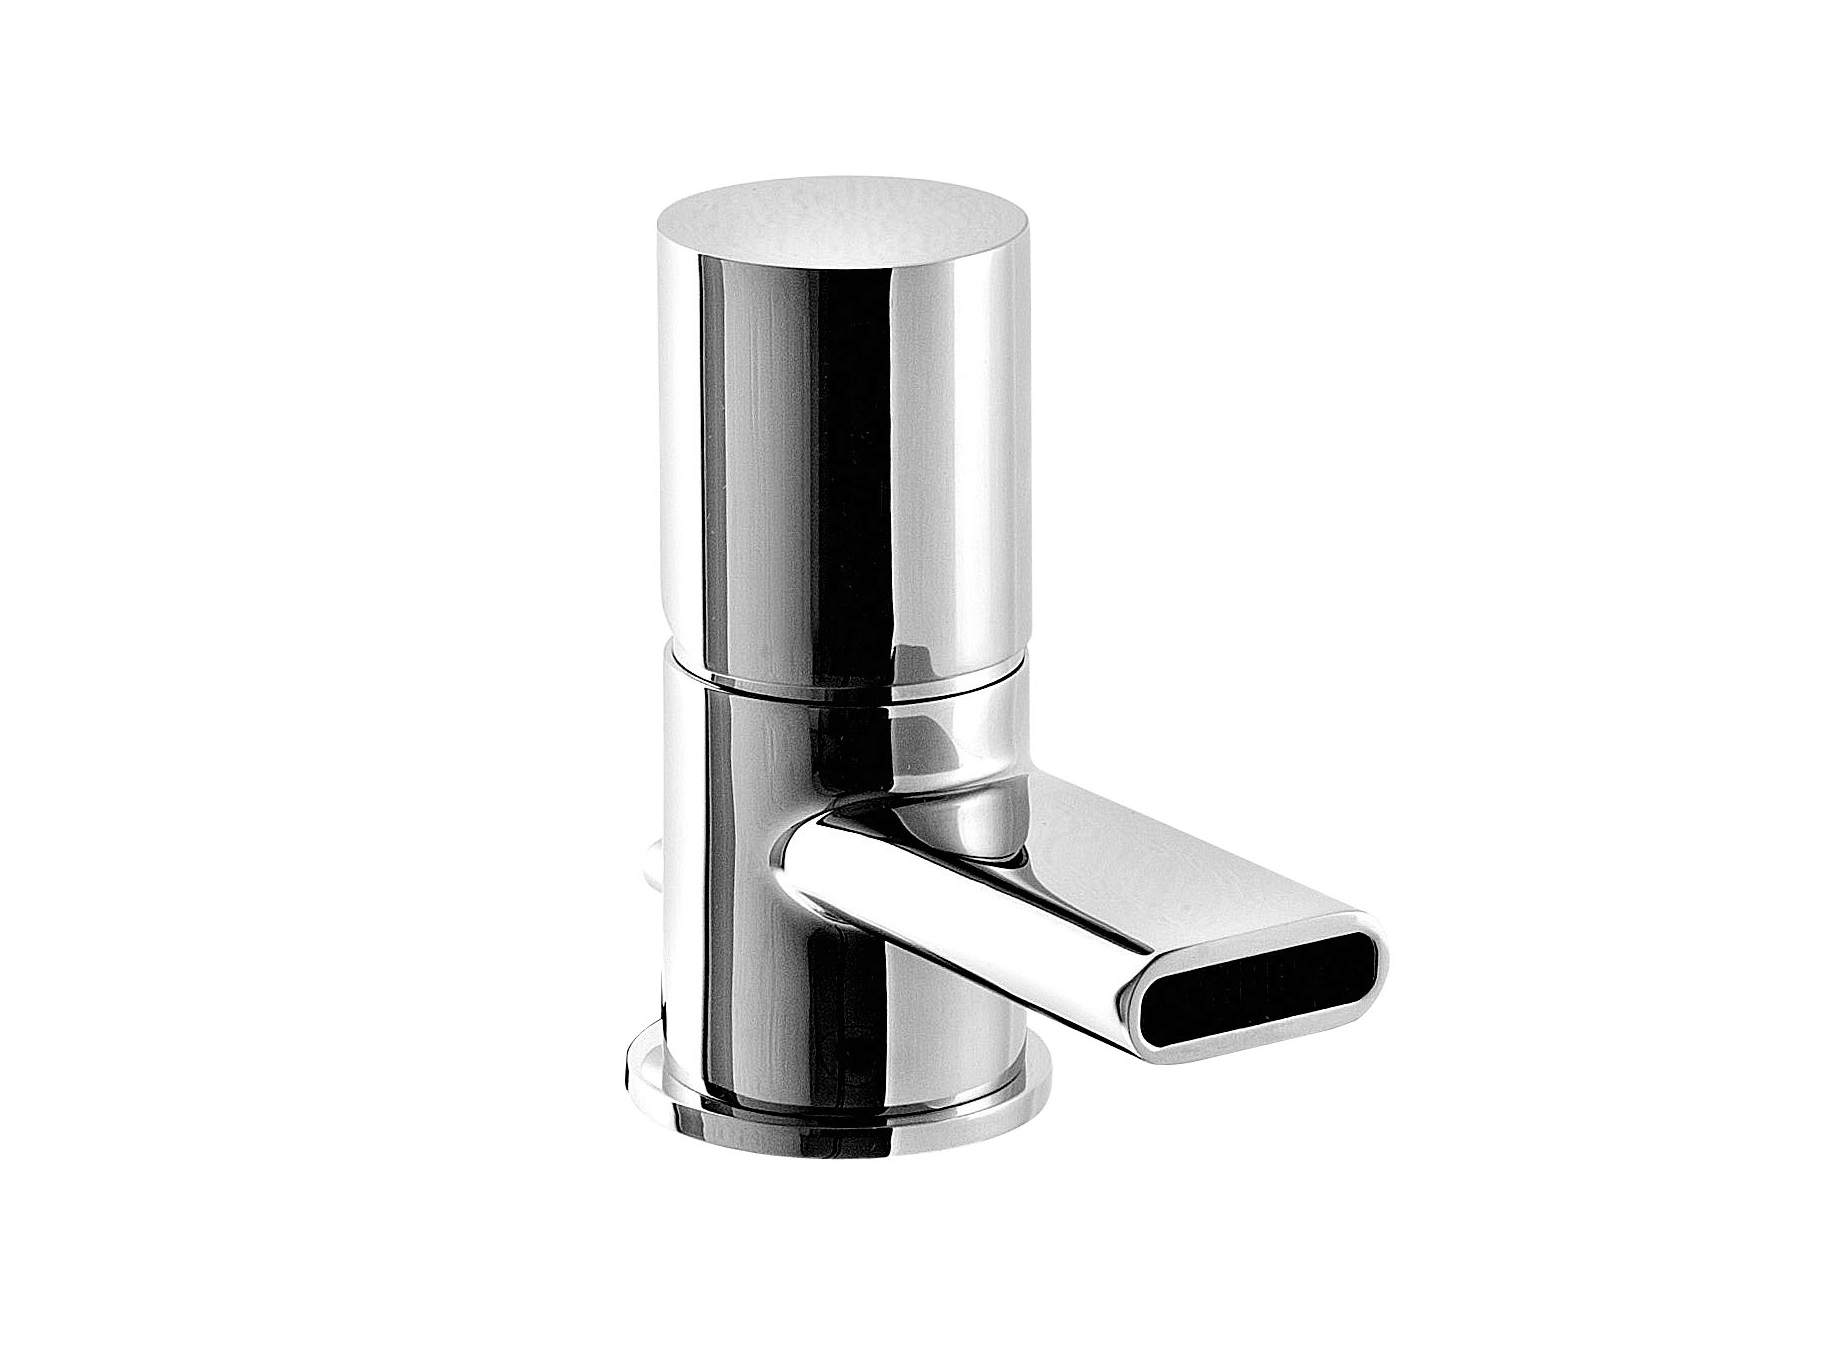 NANOTECH | Wall-mounted washbasin mixer By Rubinetterie 3M design ... | {Mixer & zerkleinerer 8}